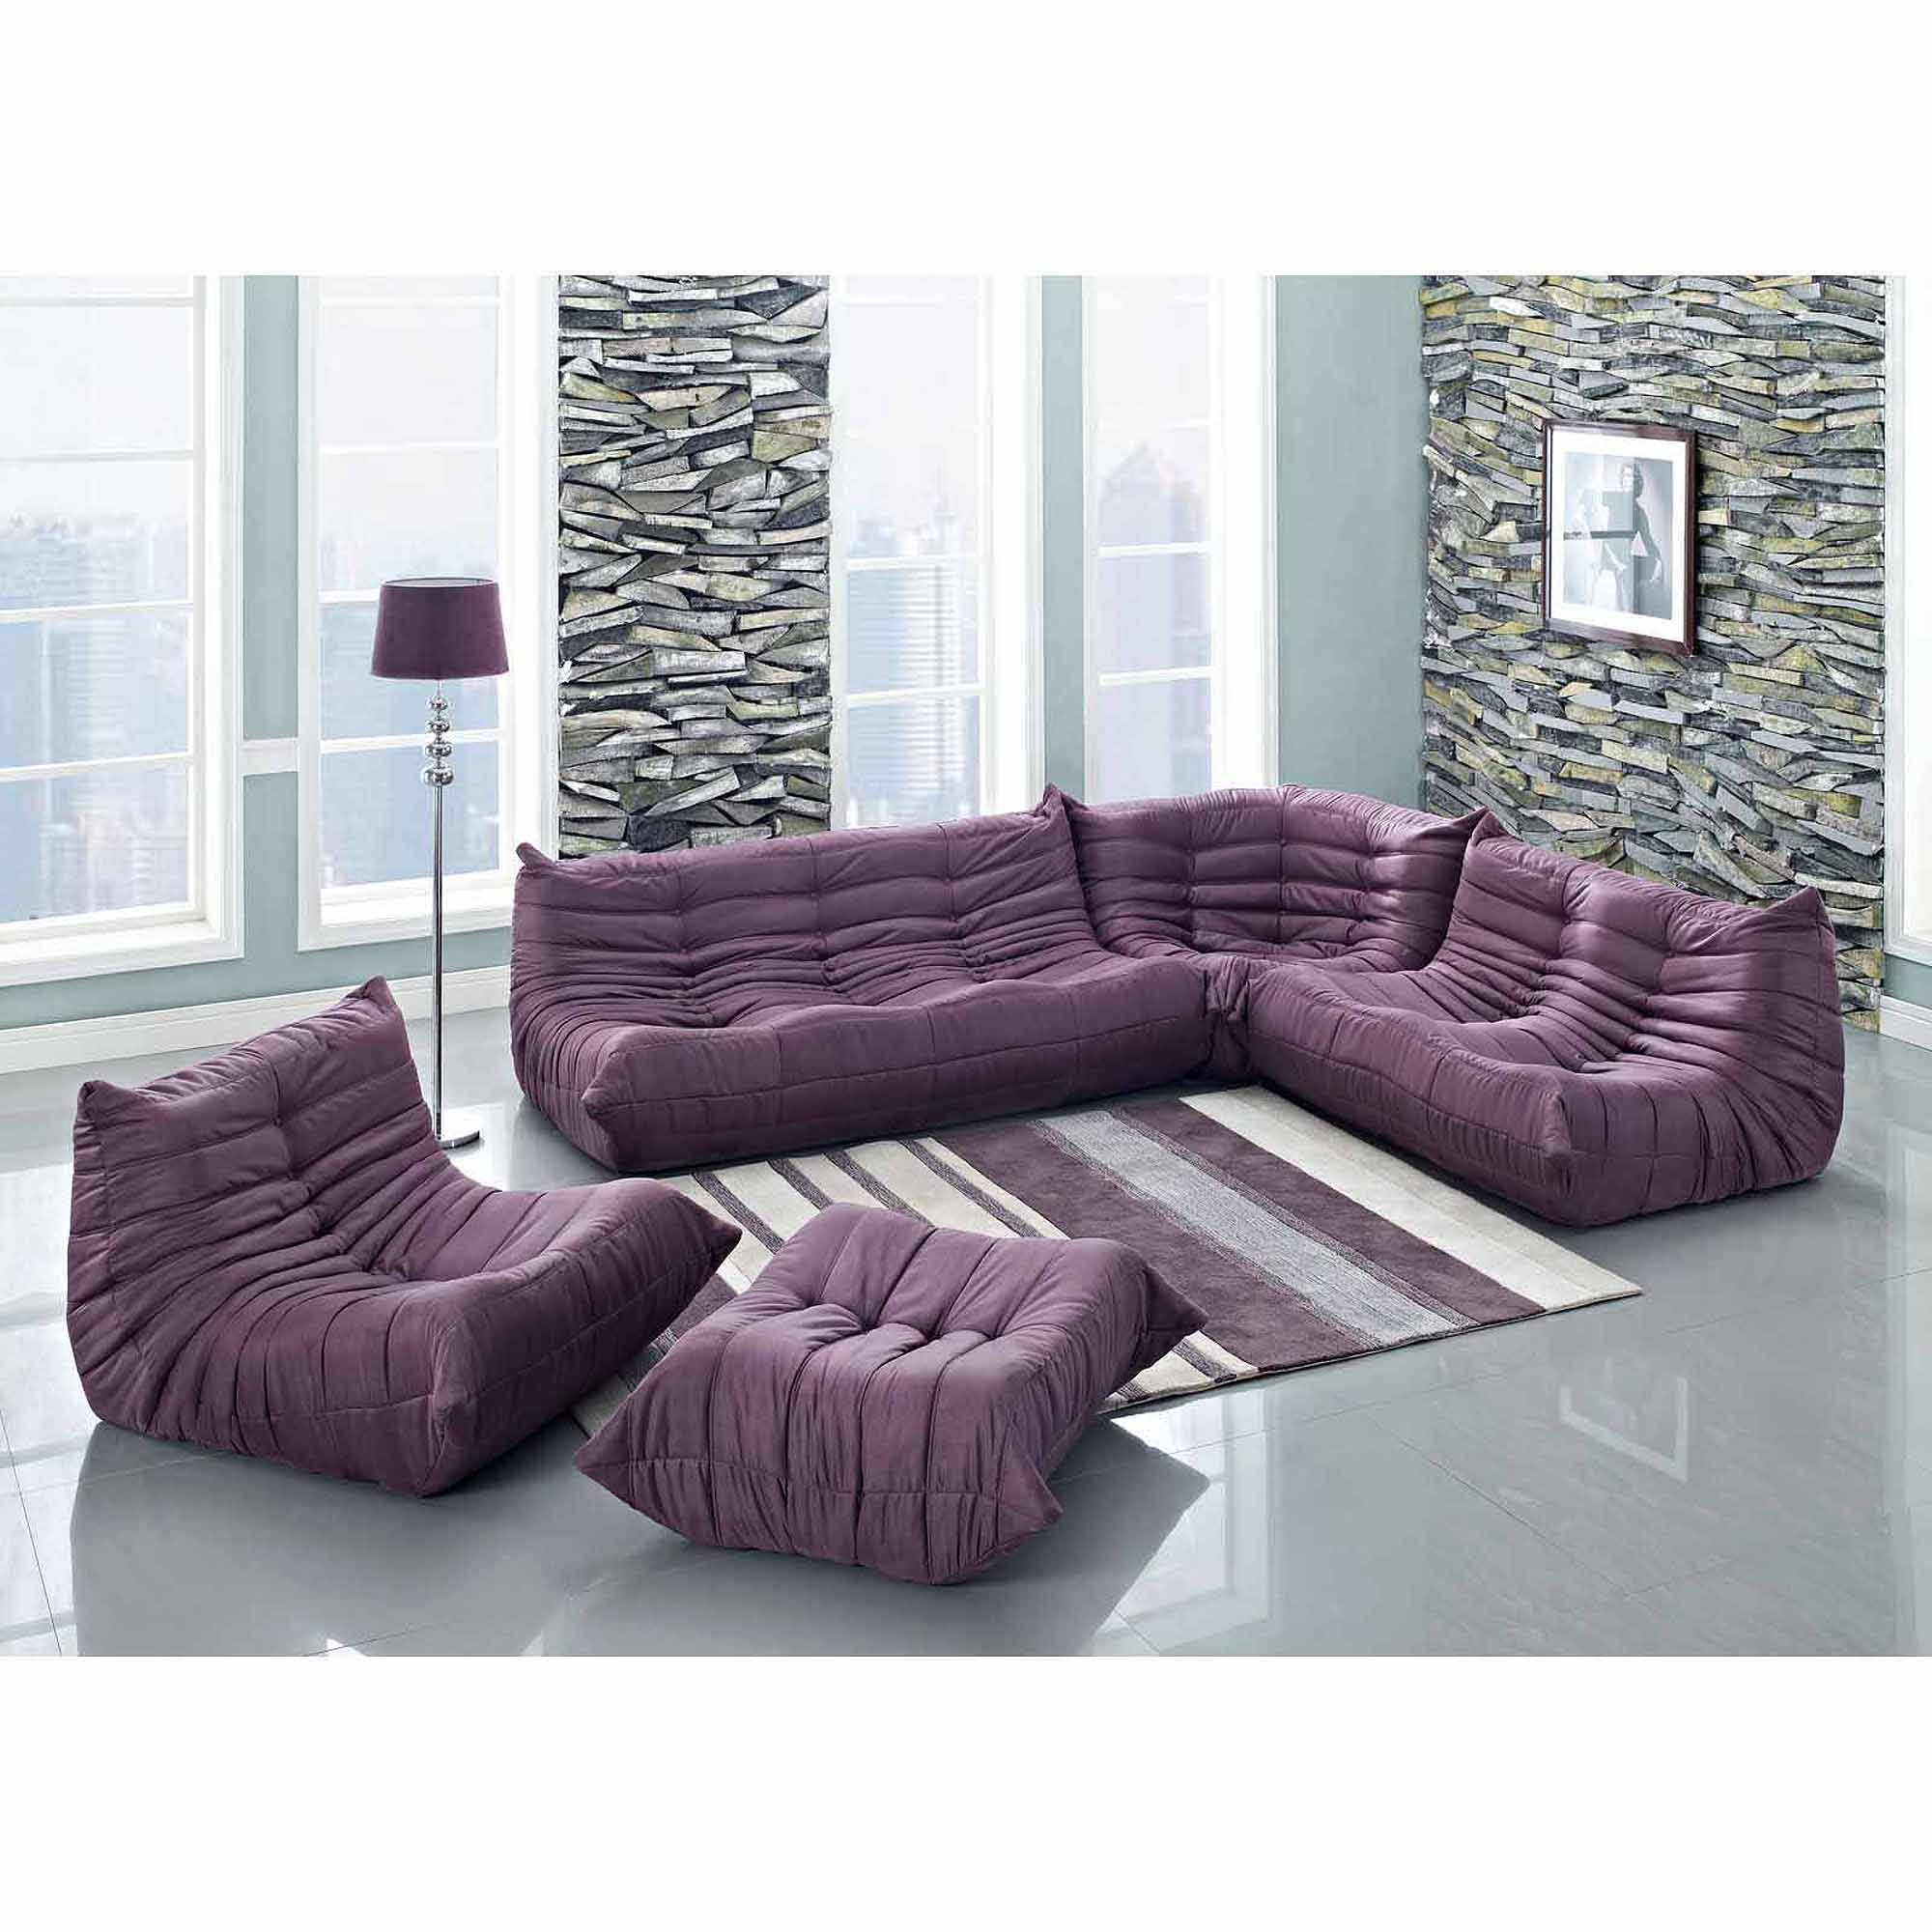 Sofas Center : Alan White Sofa And Purple Loveseatt Darkctional with regard to Eggplant Sectional Sofa (Image 21 of 30)